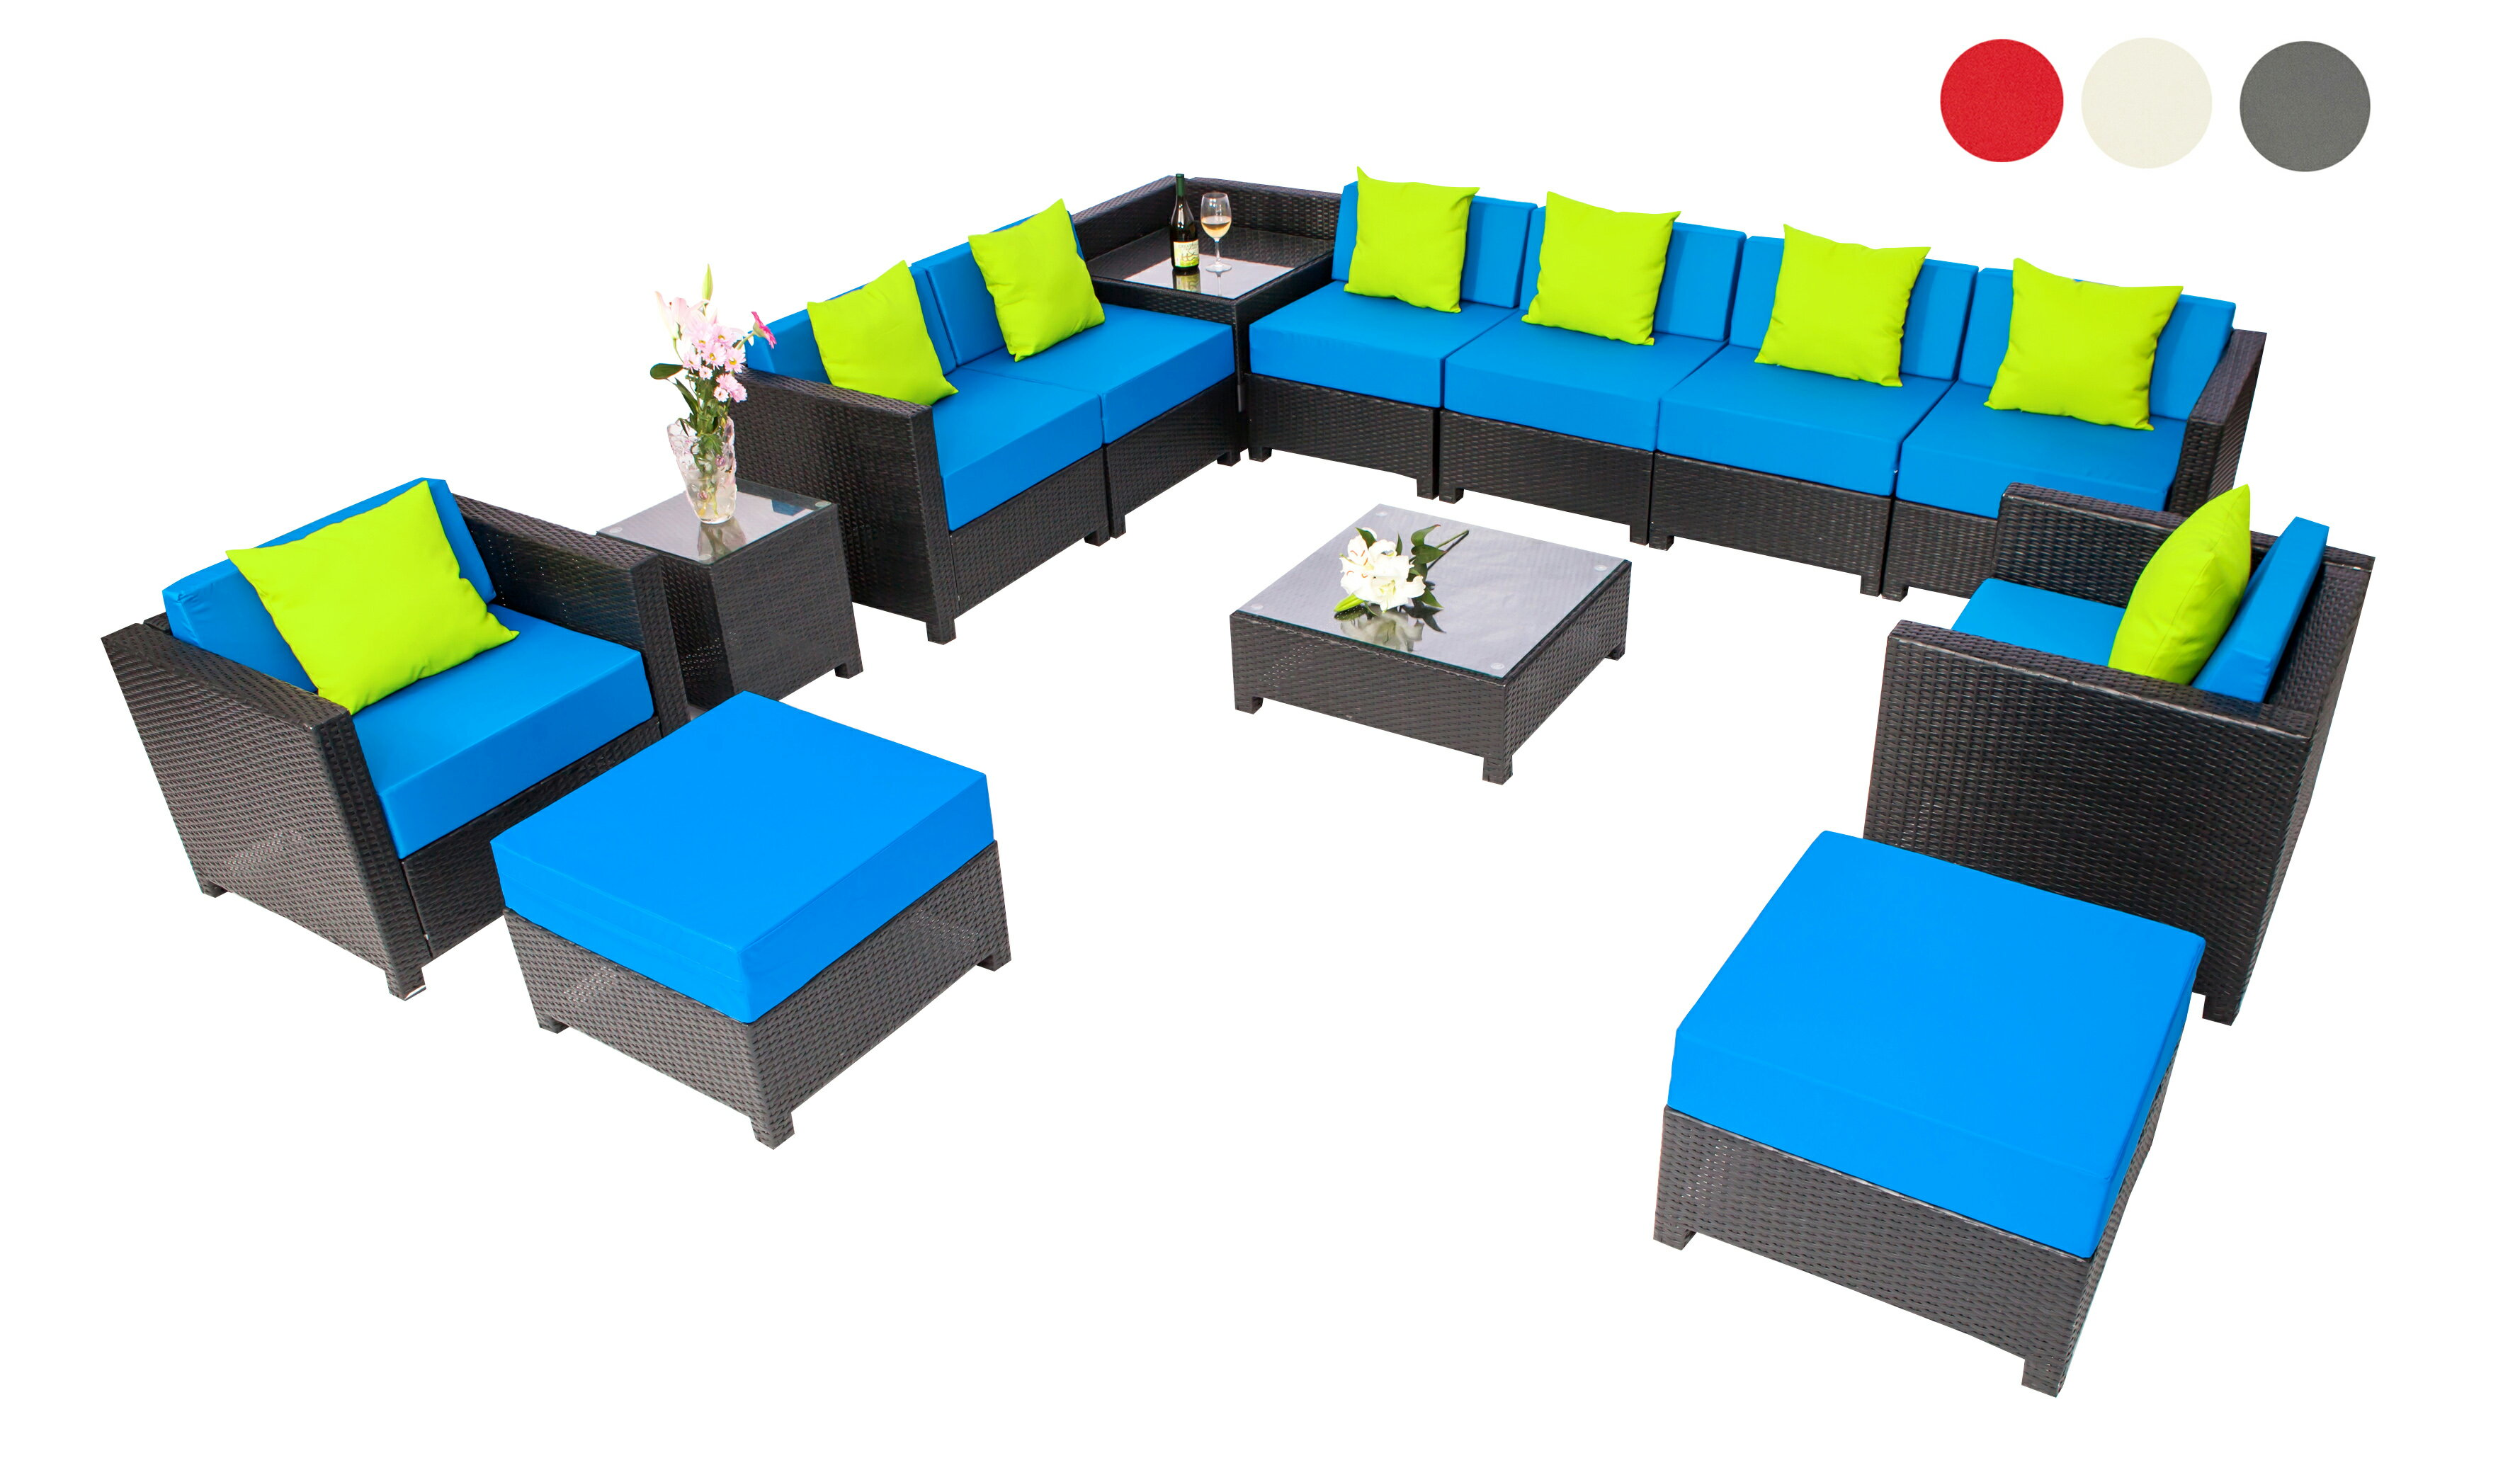 Mcombo 13 Pcs Luxury Wicker Patio Sectional Indoor Outdoor Sofa Furniture Aluminum Frame Set Blue